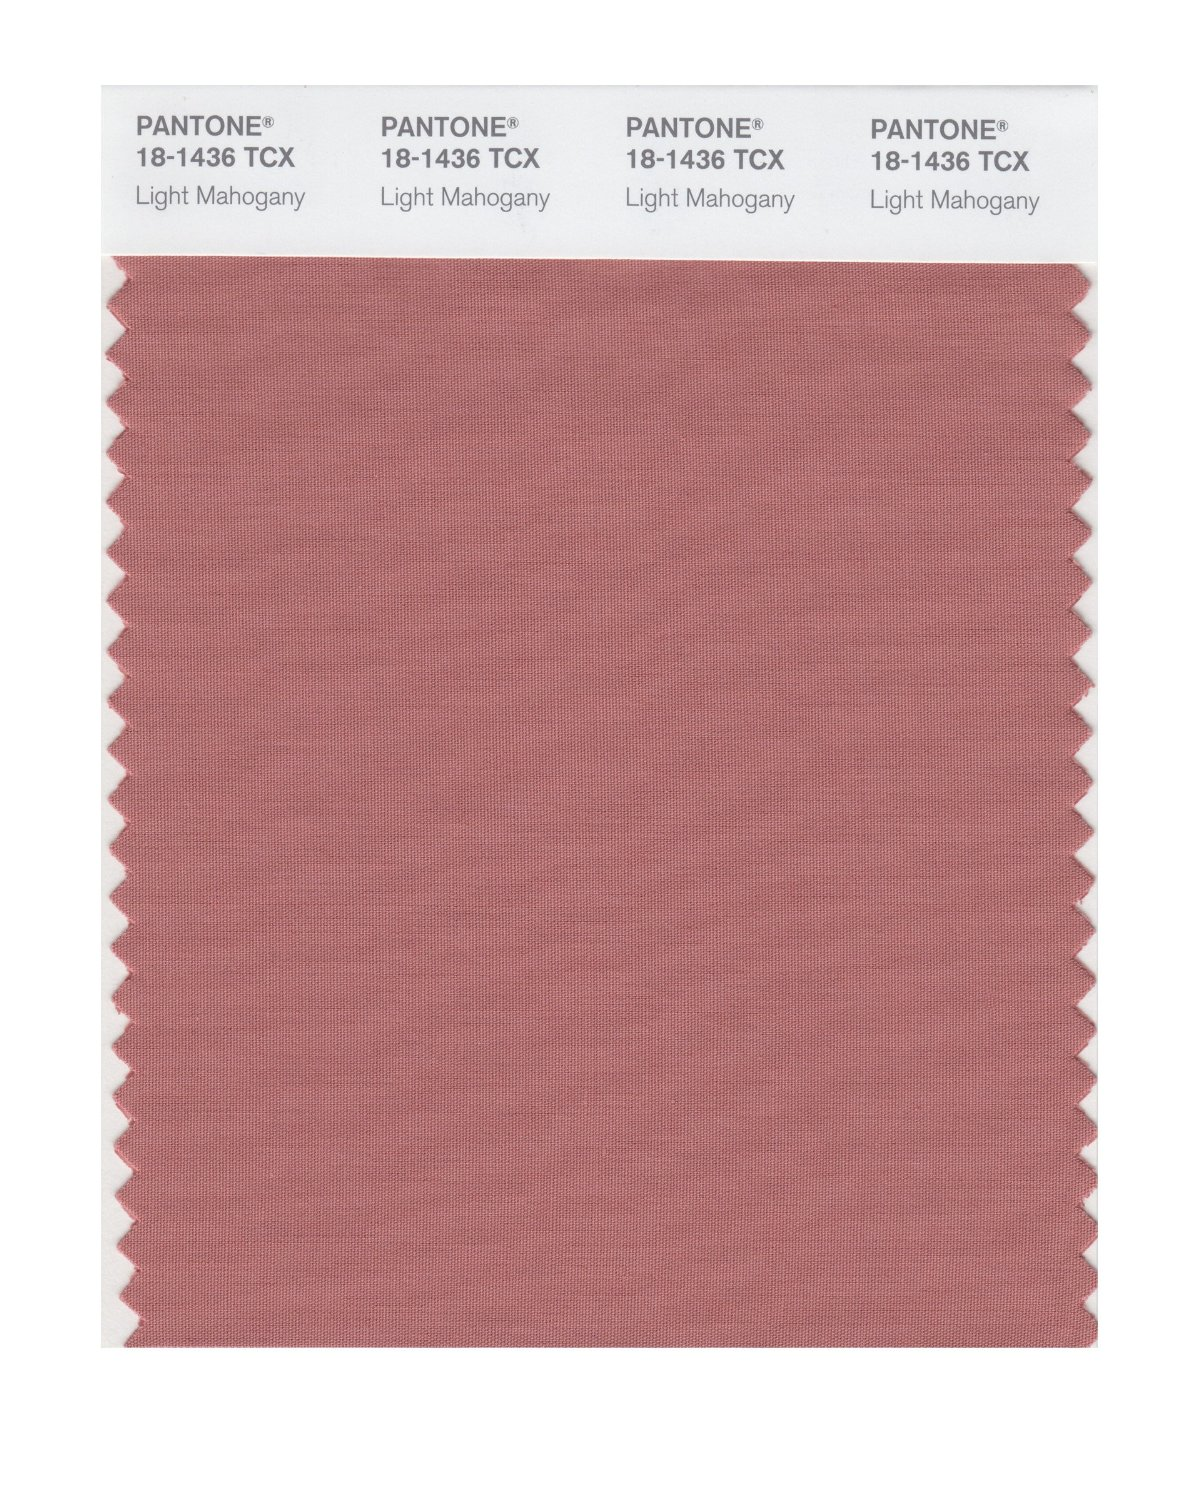 Pantone Smart Swatch 18-1436 Light Mahogany